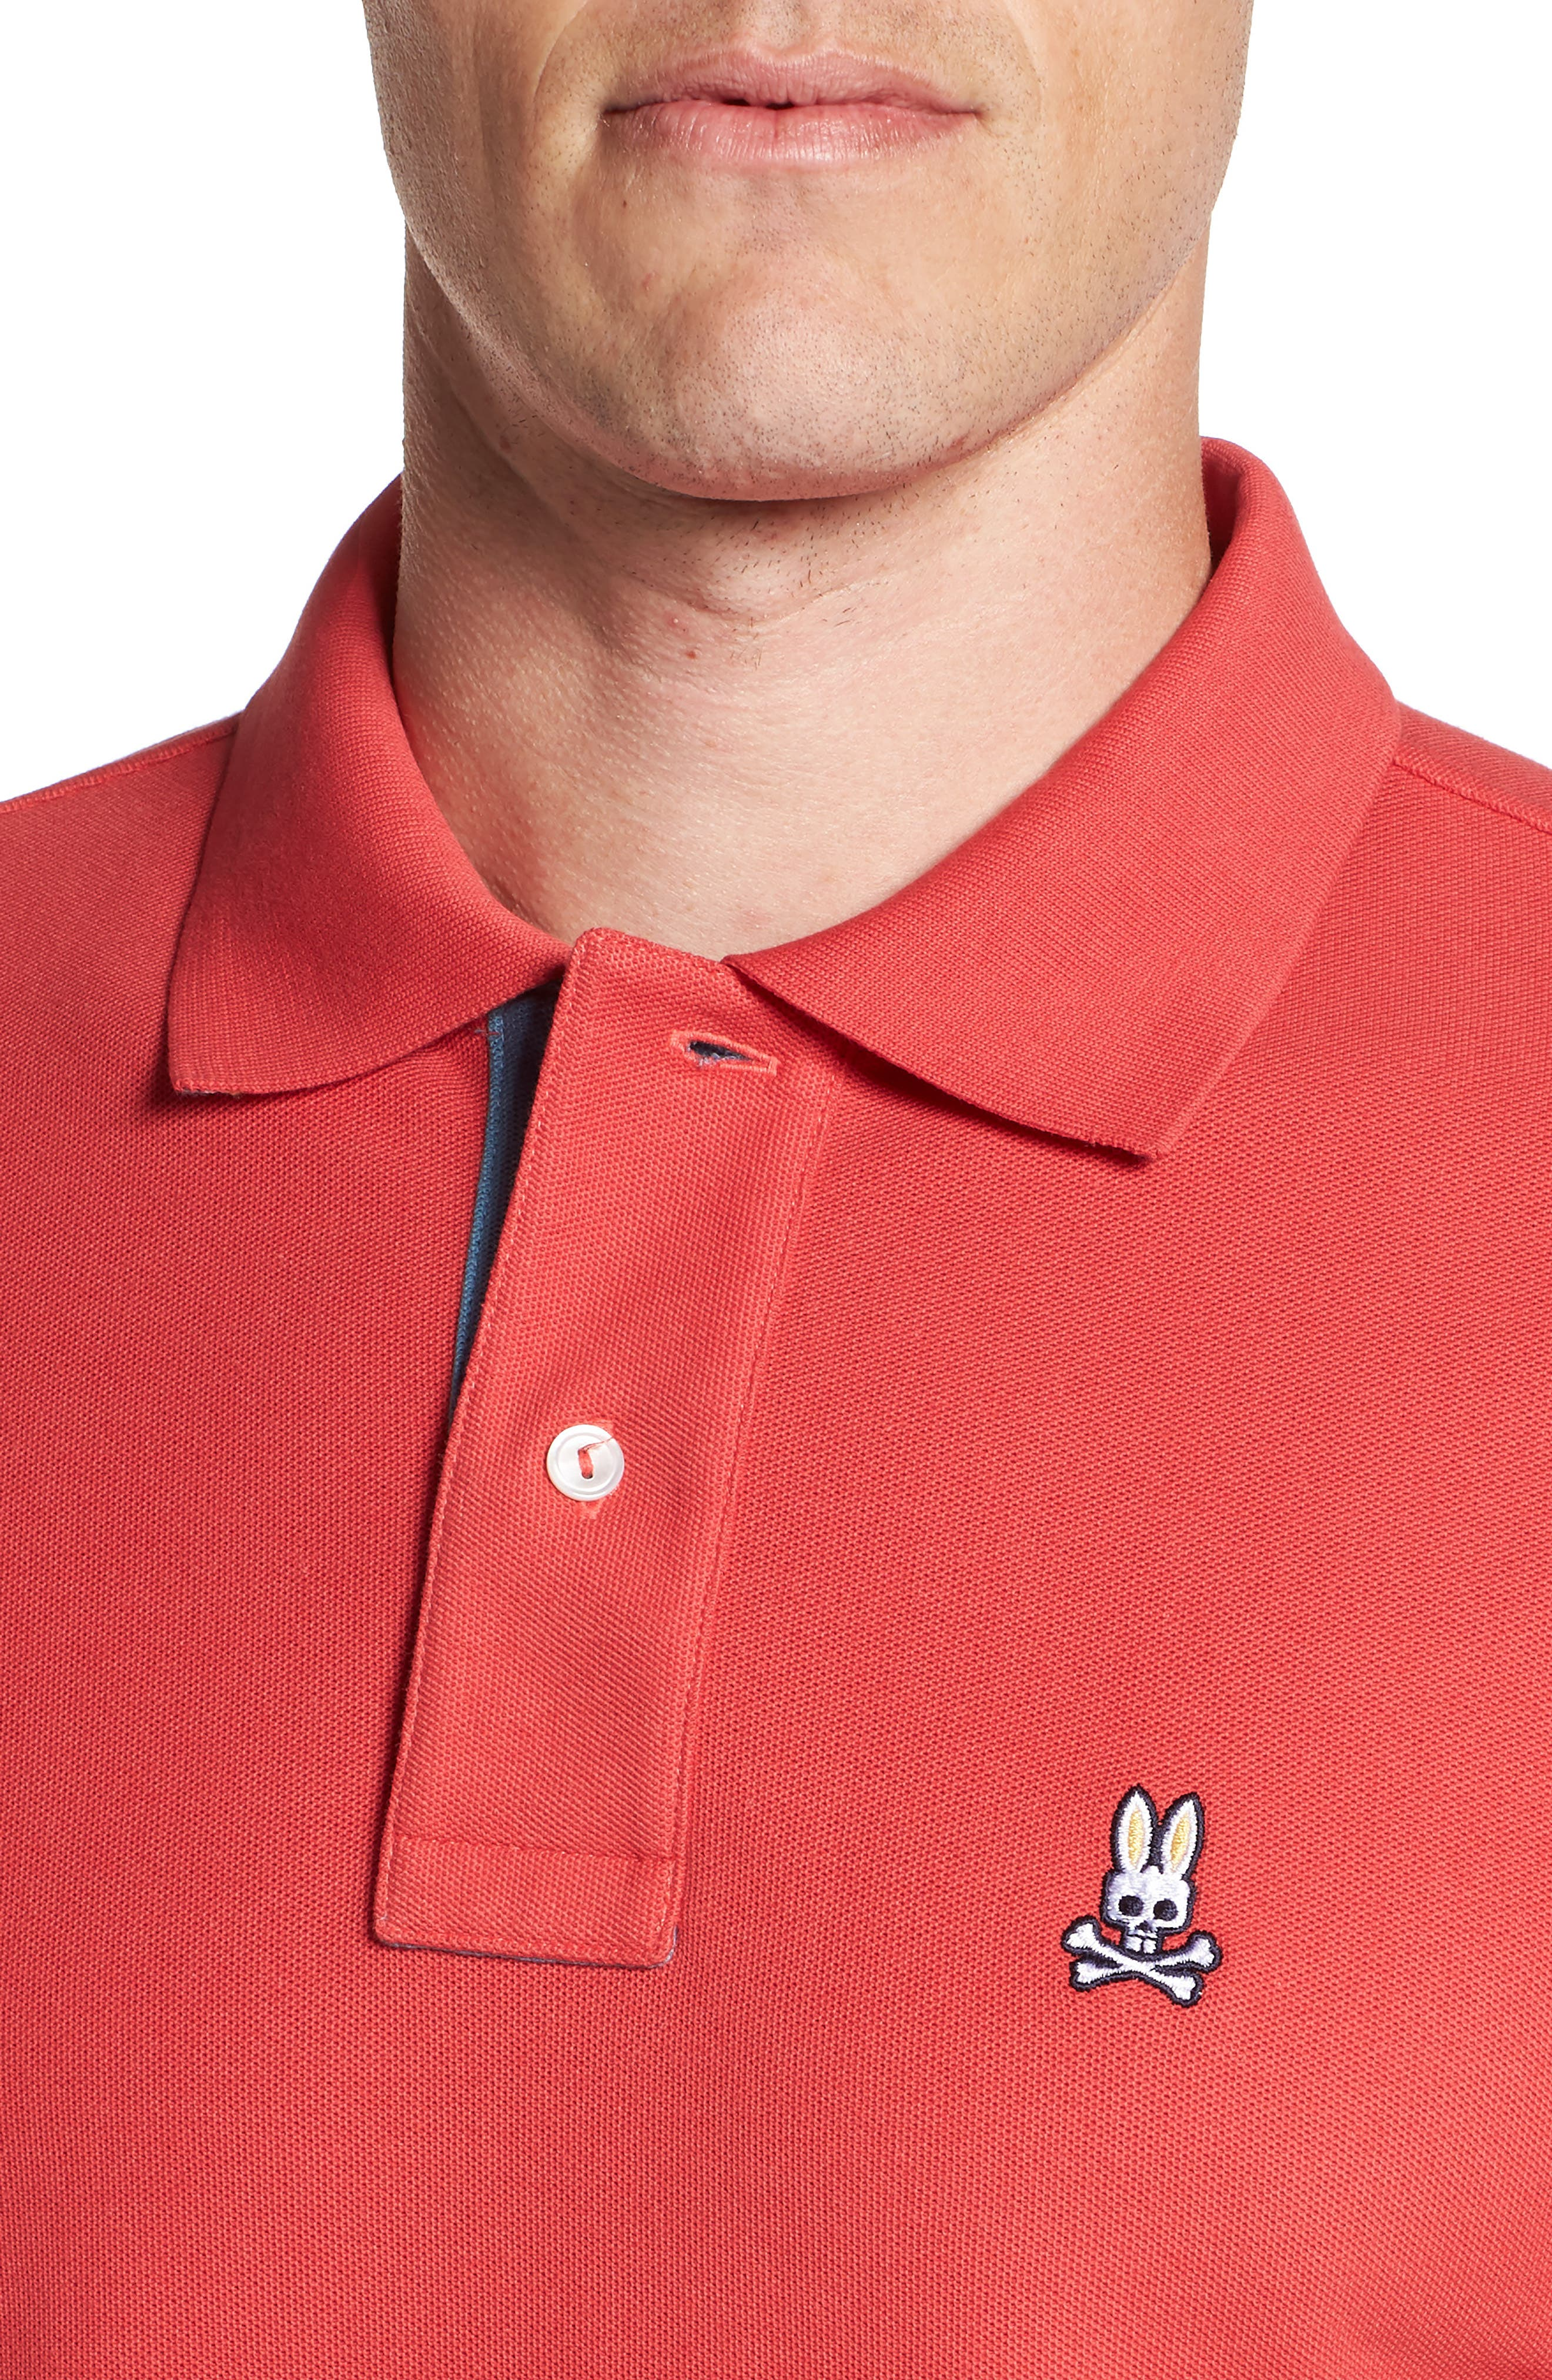 St. Croix Piqué Polo,                             Alternate thumbnail 4, color,                             CASSIS